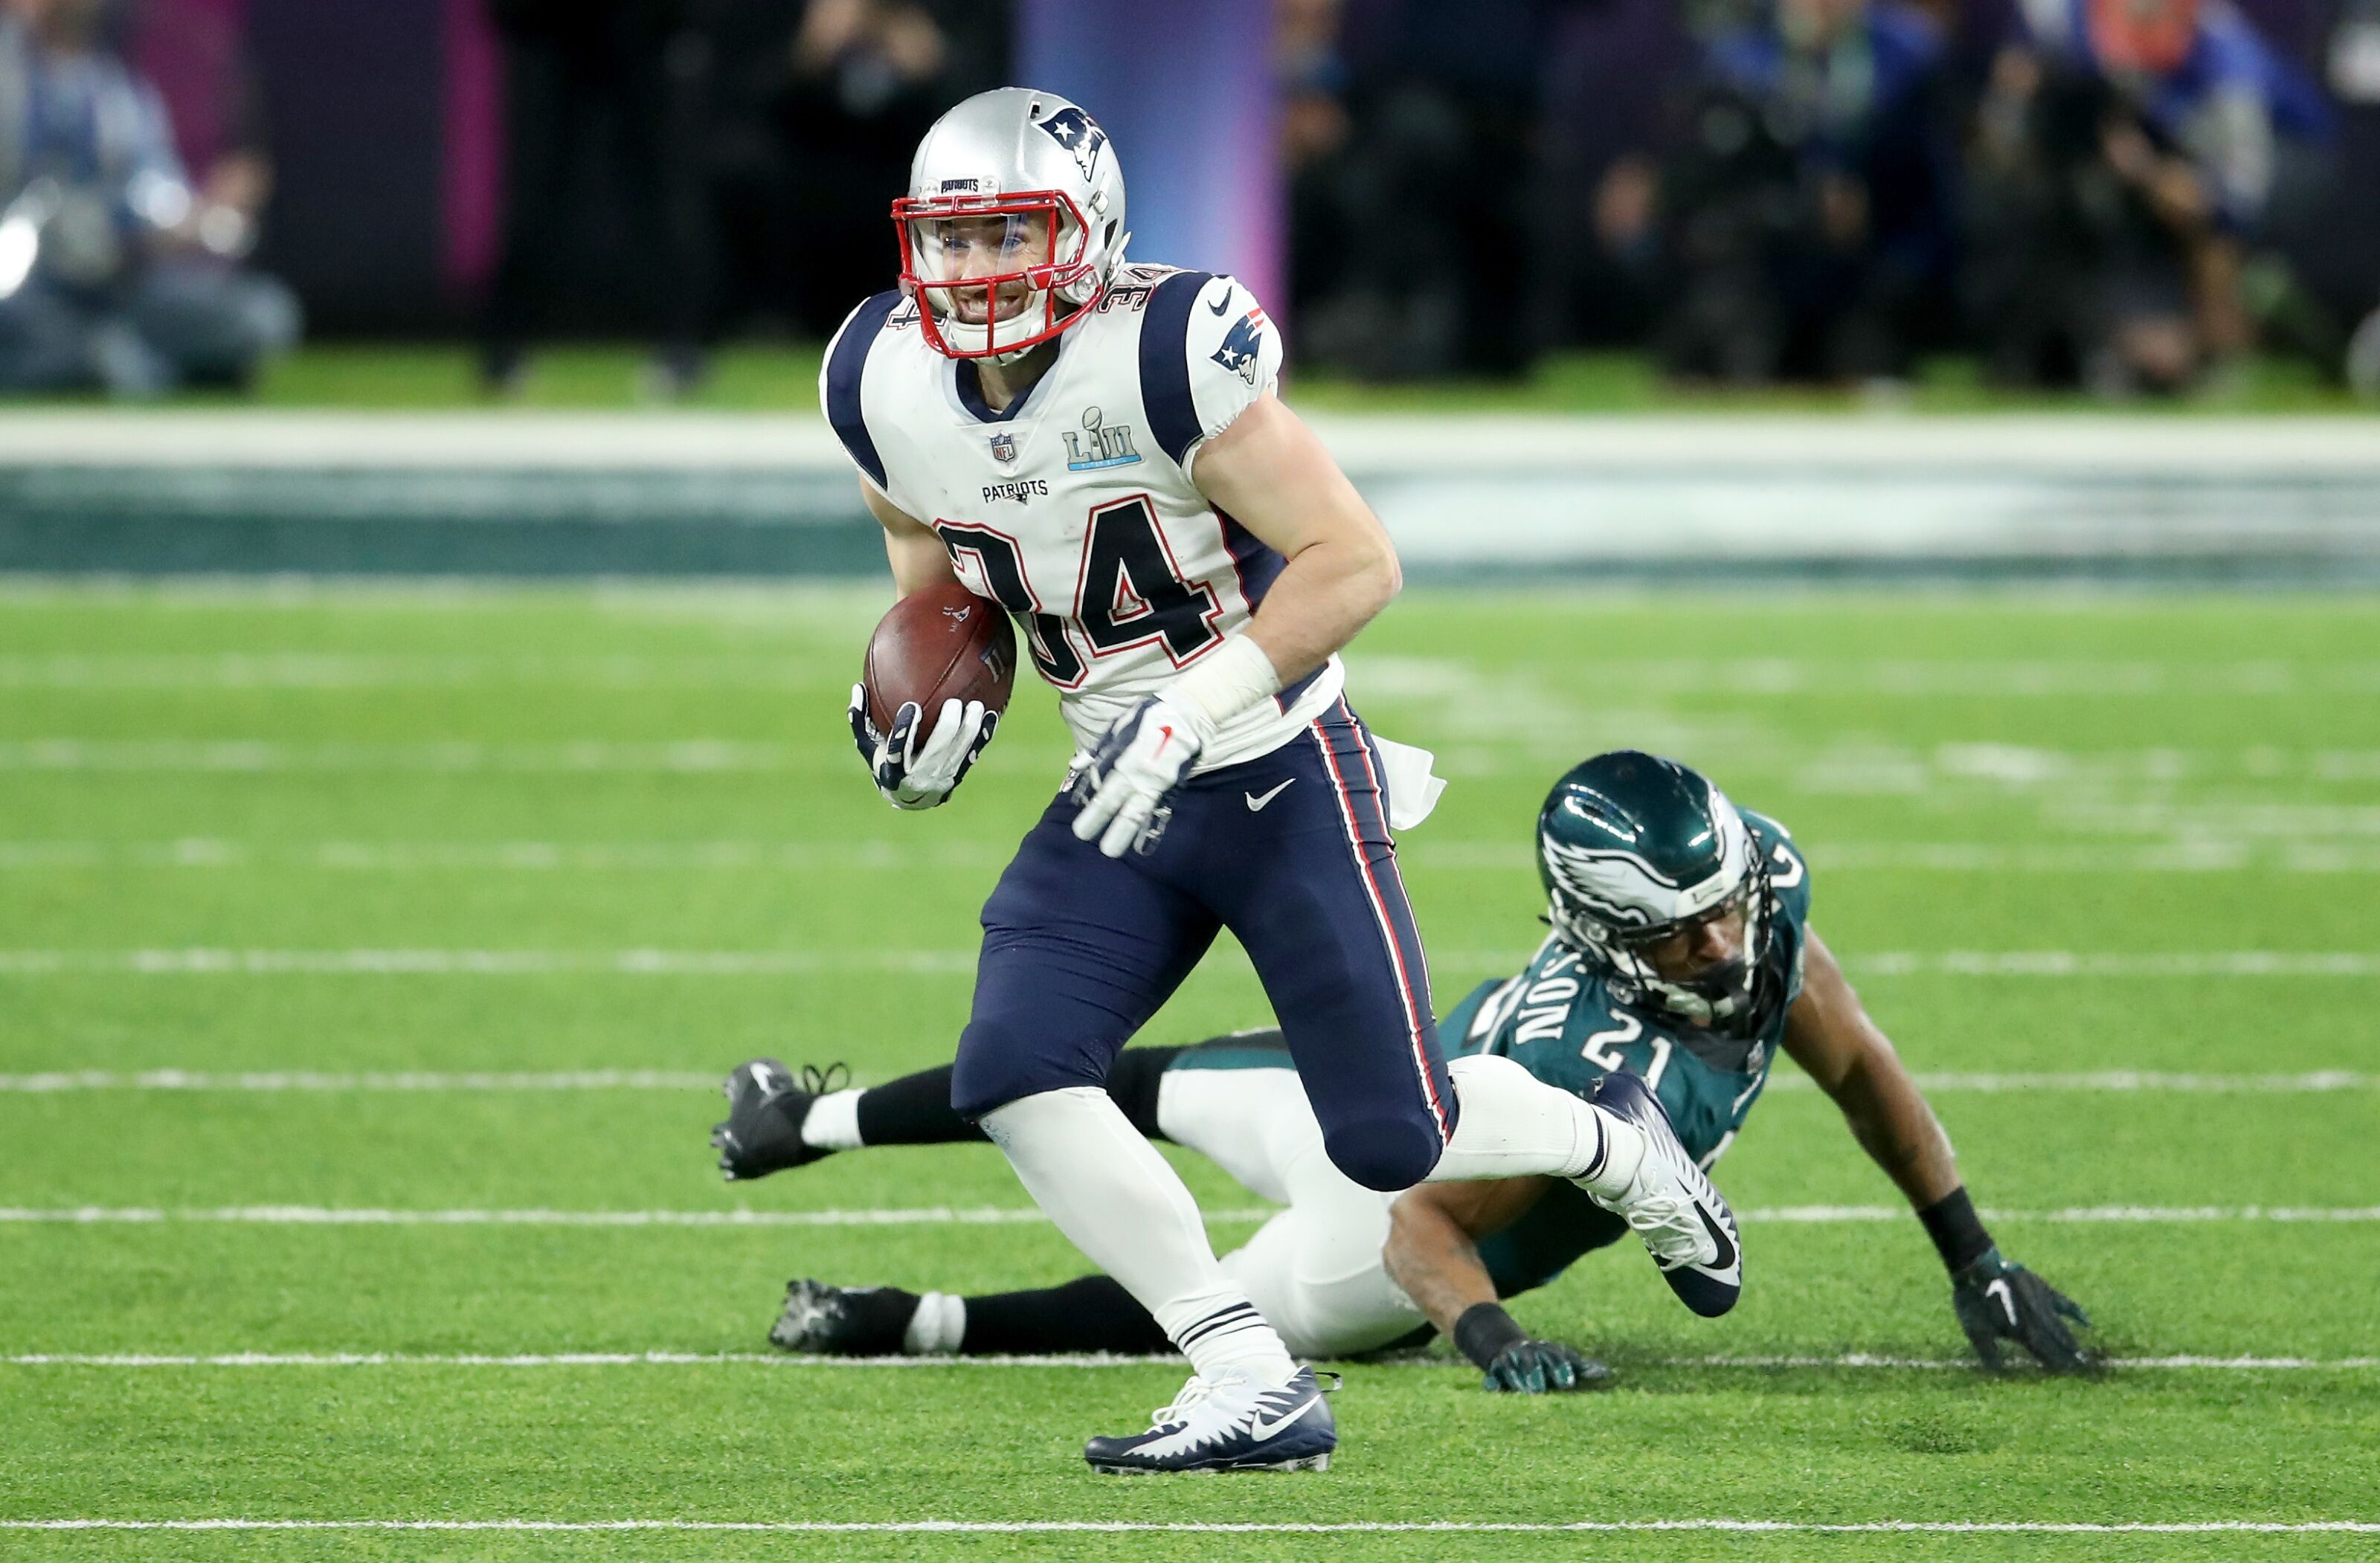 Final thoughts on New England Patriots versus Philadelphia Eagles